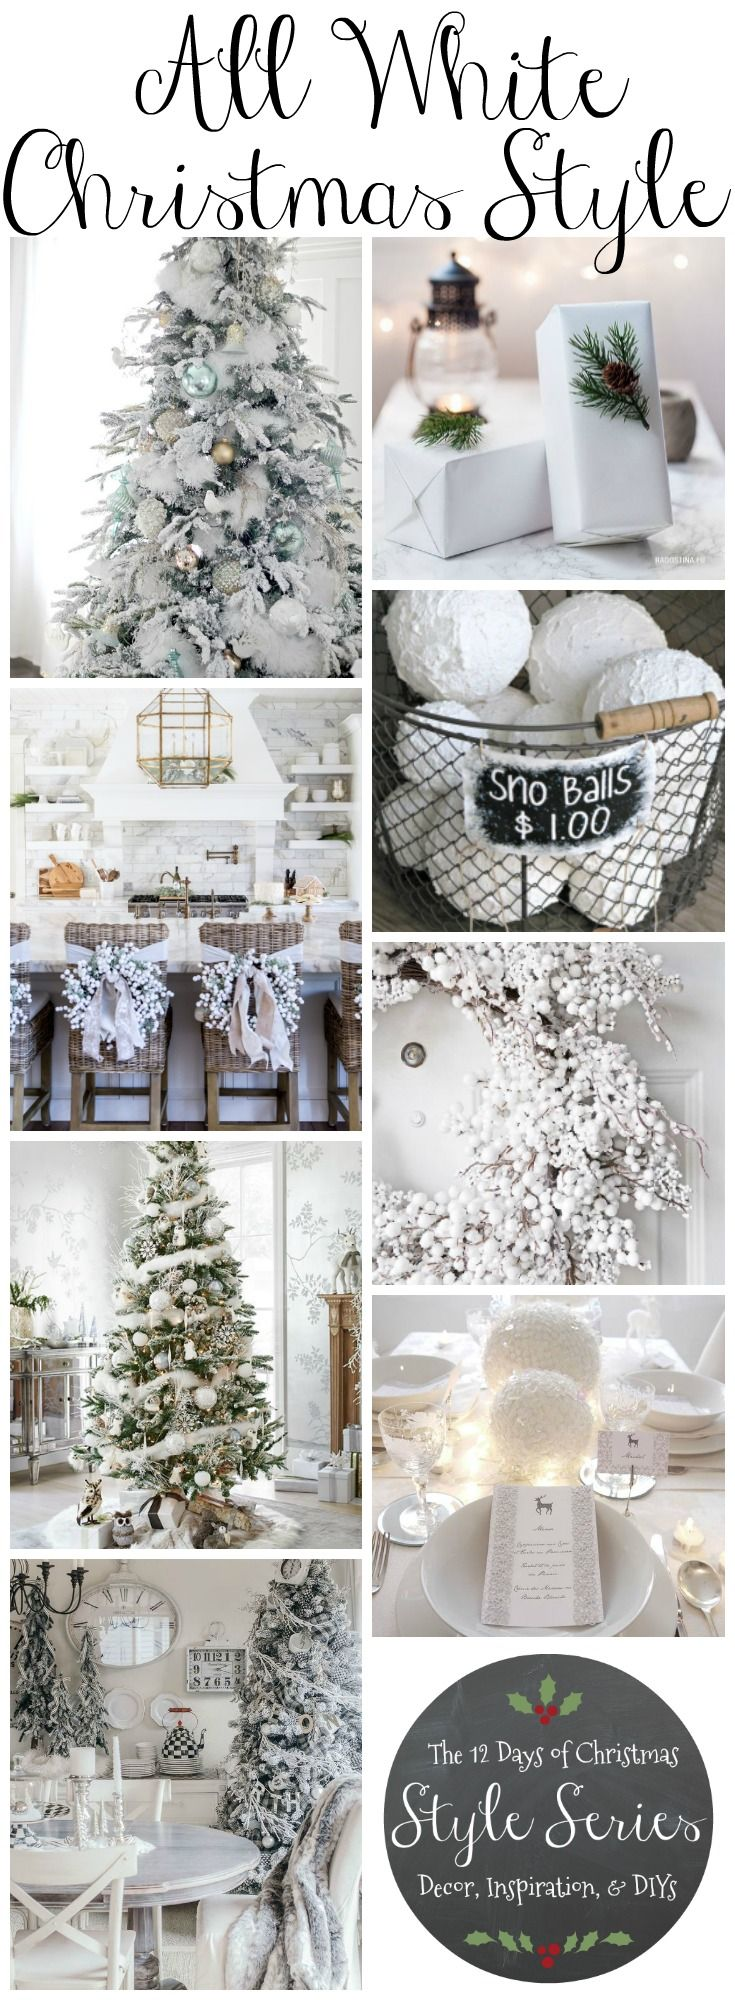 710 best Deck the Halls with boughs of Holly! images on Pinterest ...